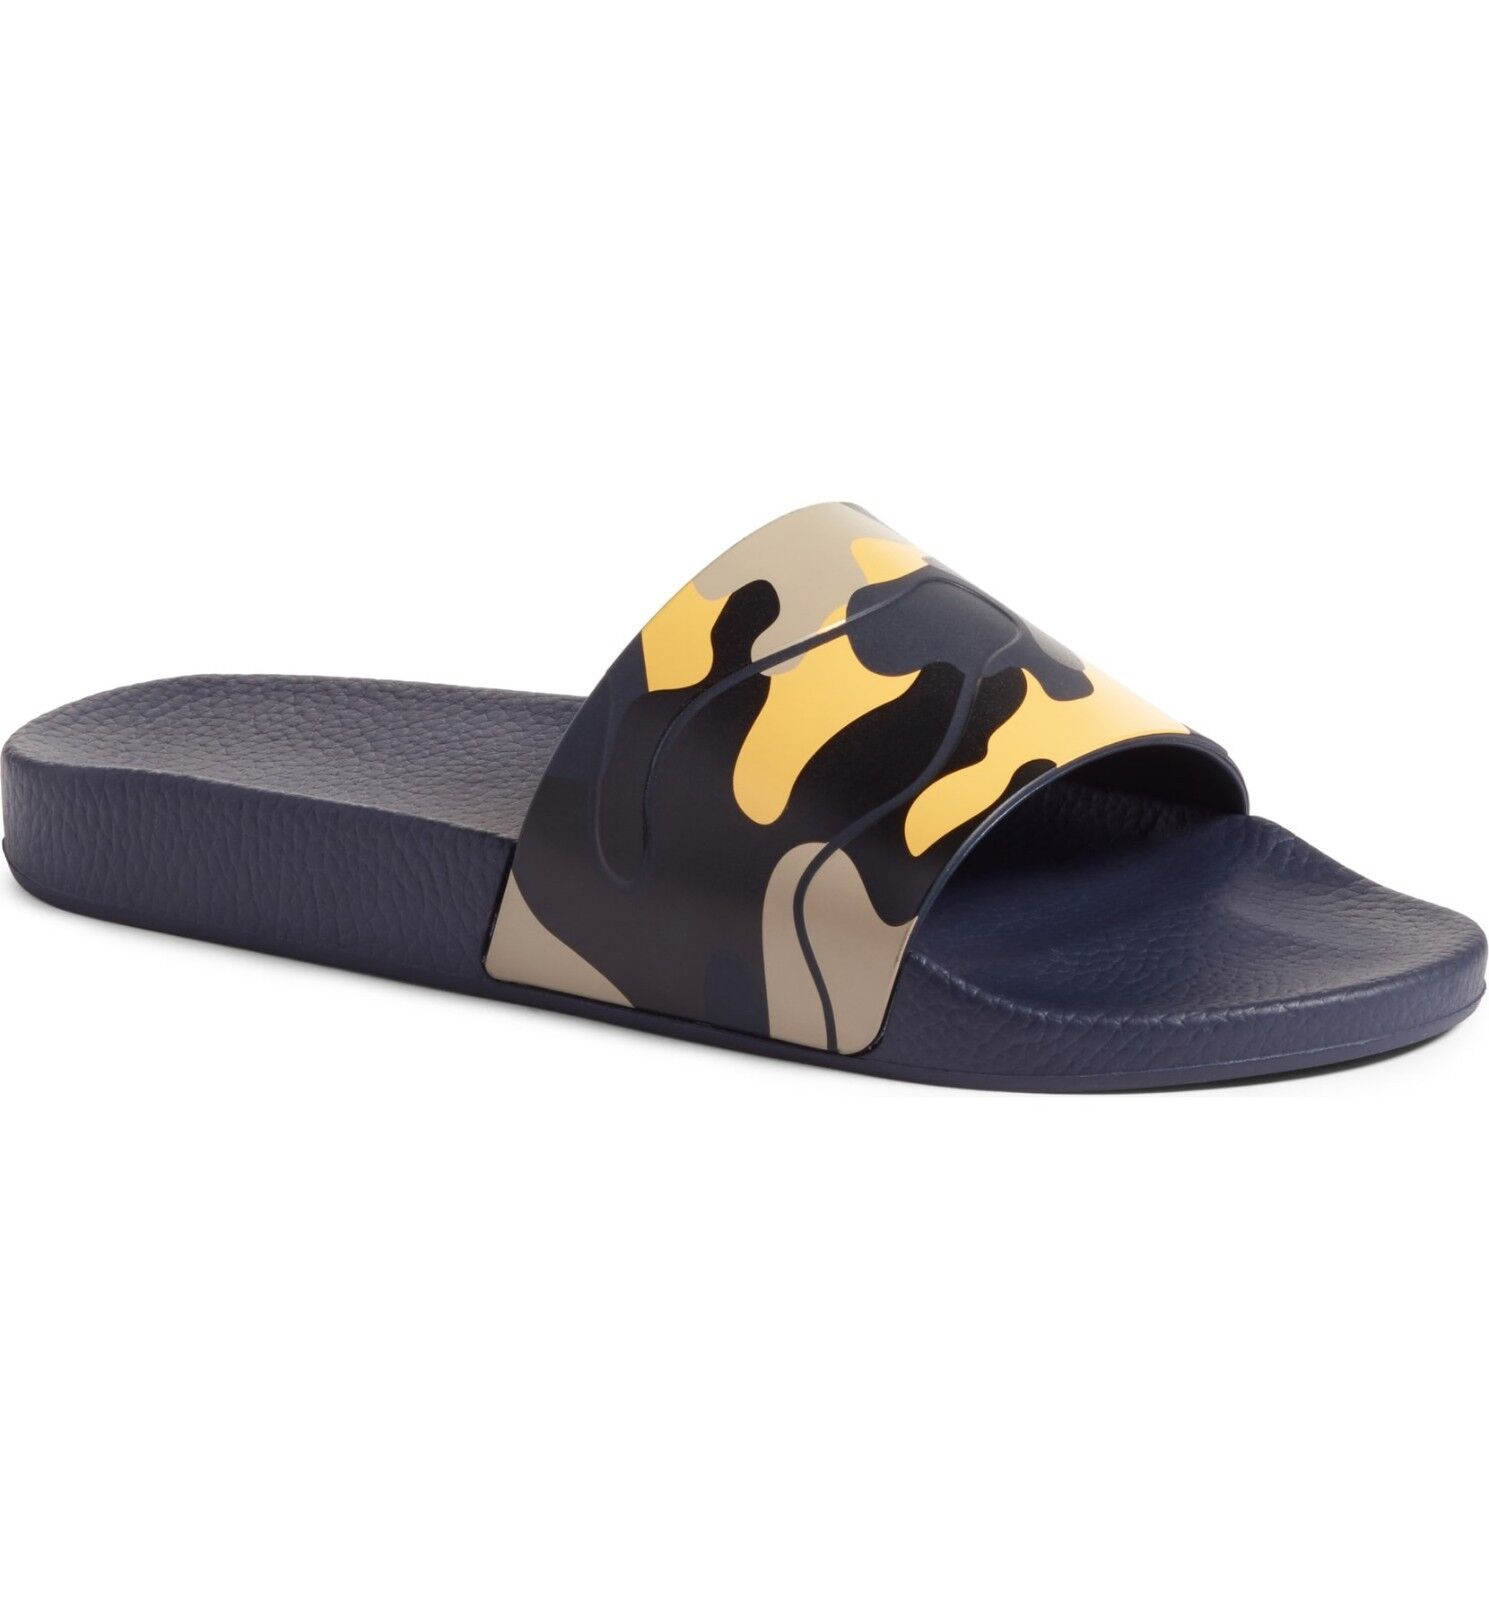 NIB NEW Valentino Garavani Uomo camouflage pool slide sandals navy/gold 7 8 9